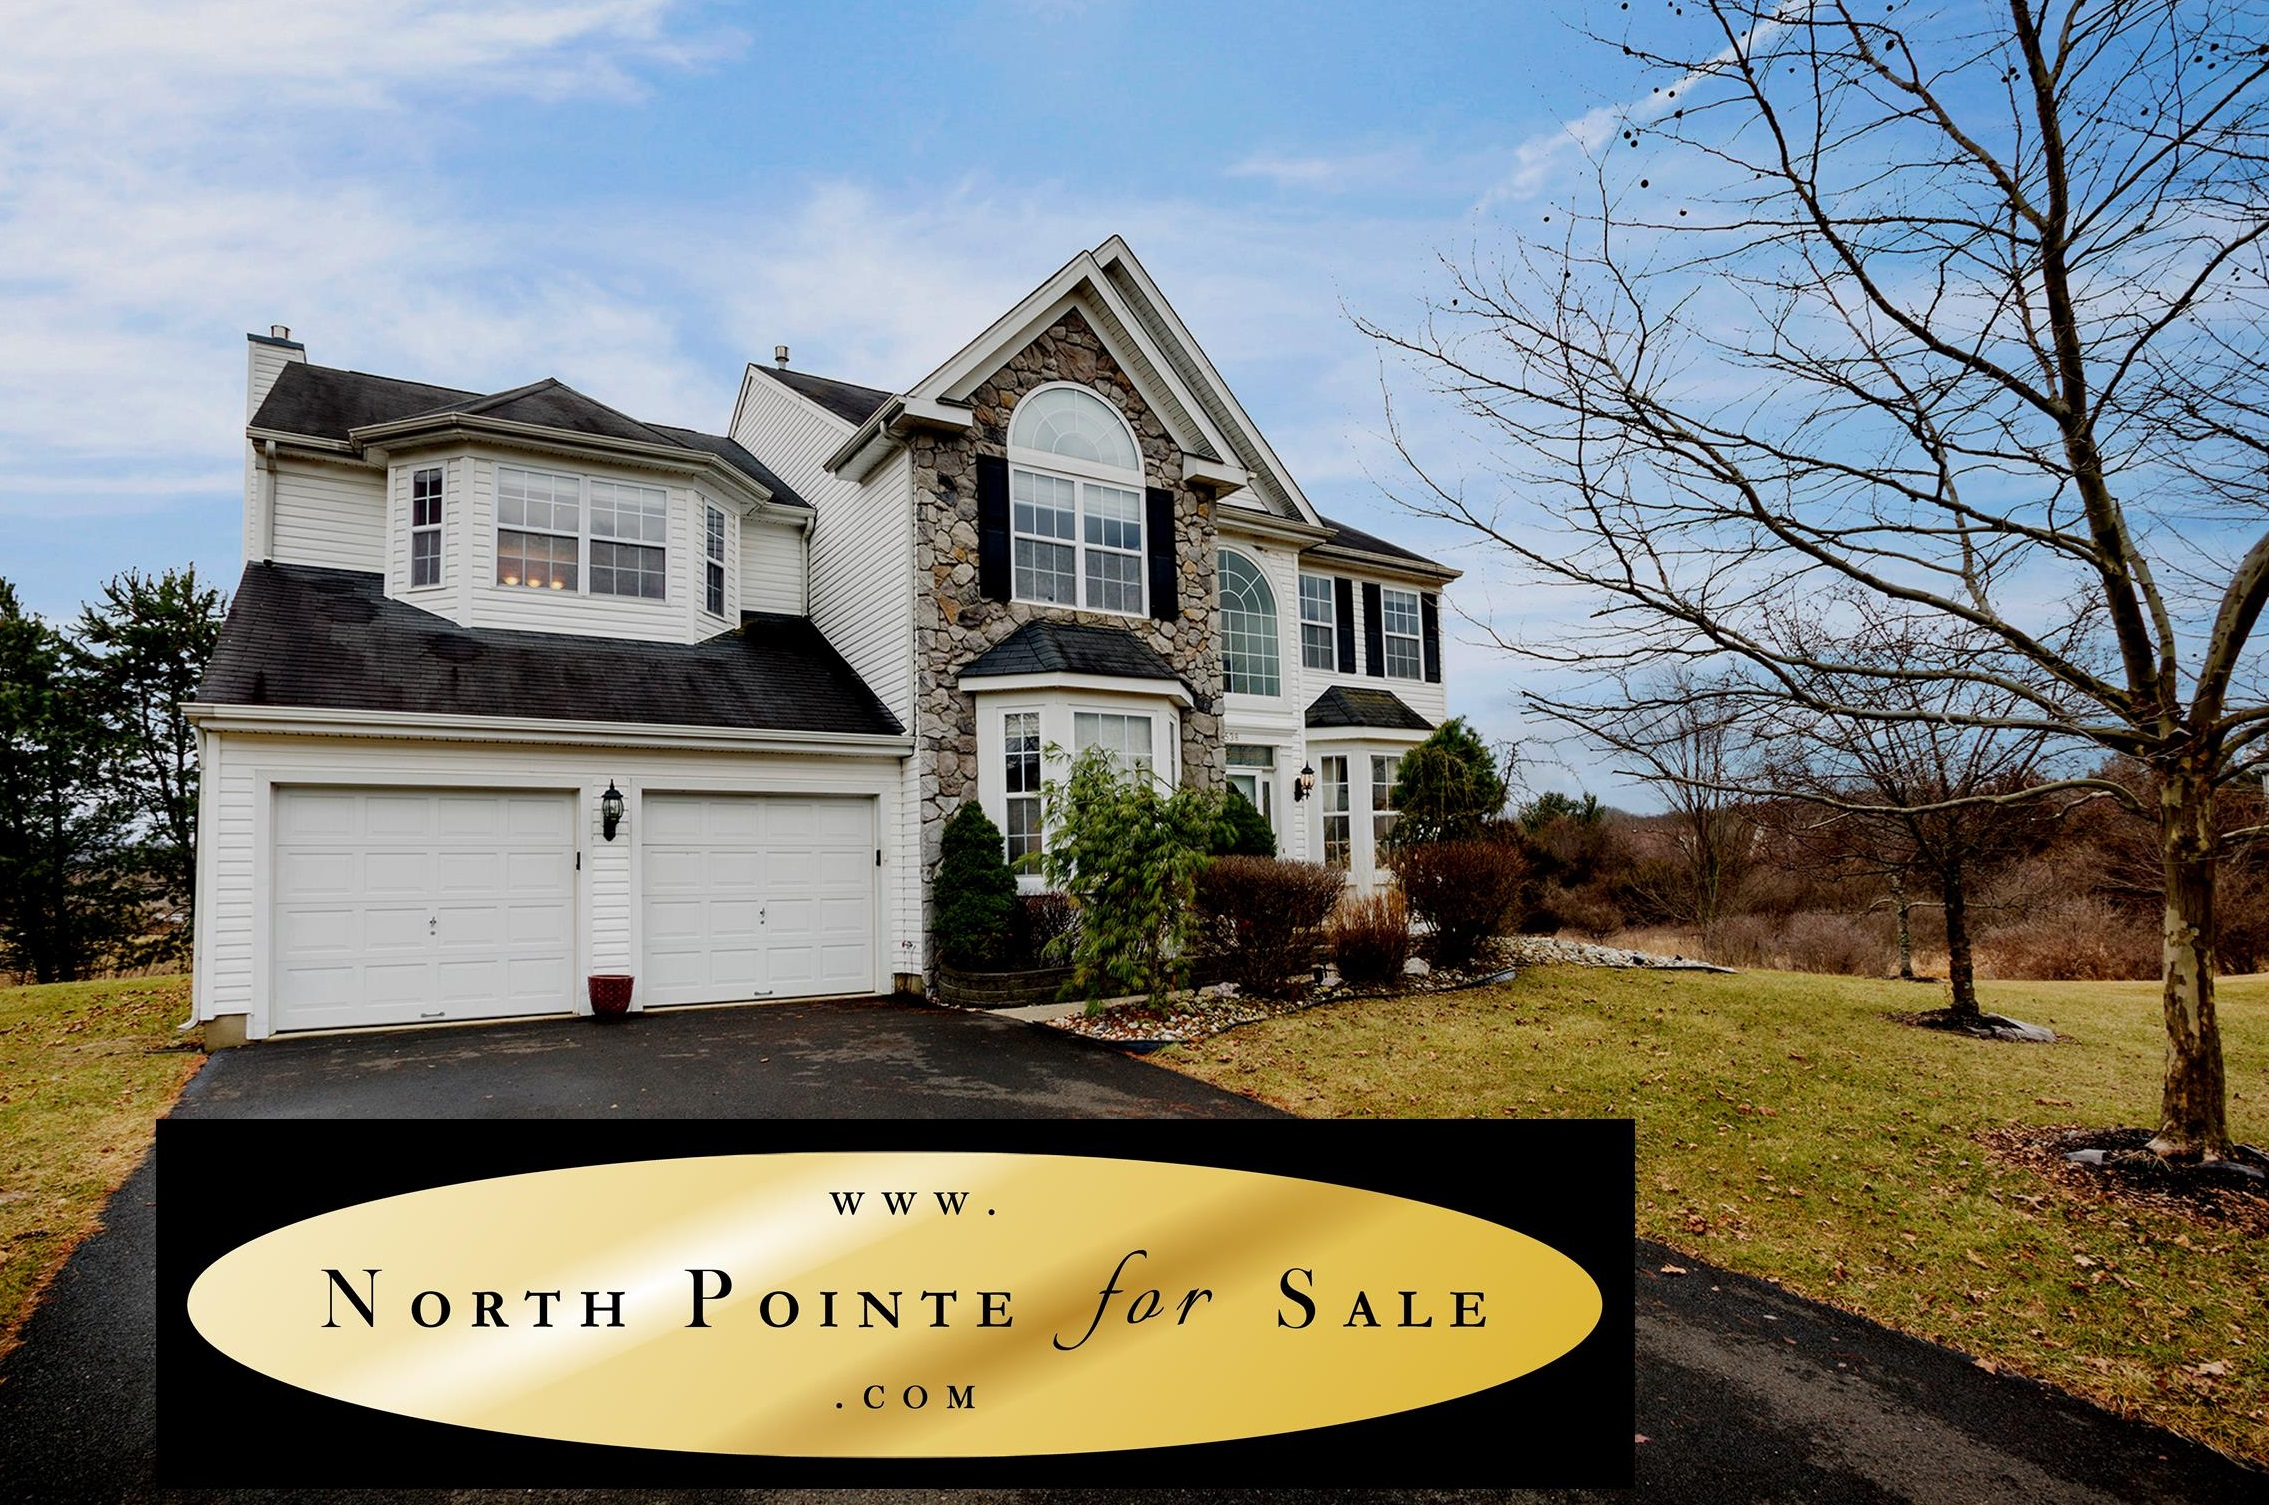 www.NorthPointeForSale.com | North Pointe For Sale | Homes in New Hope PA for Sale